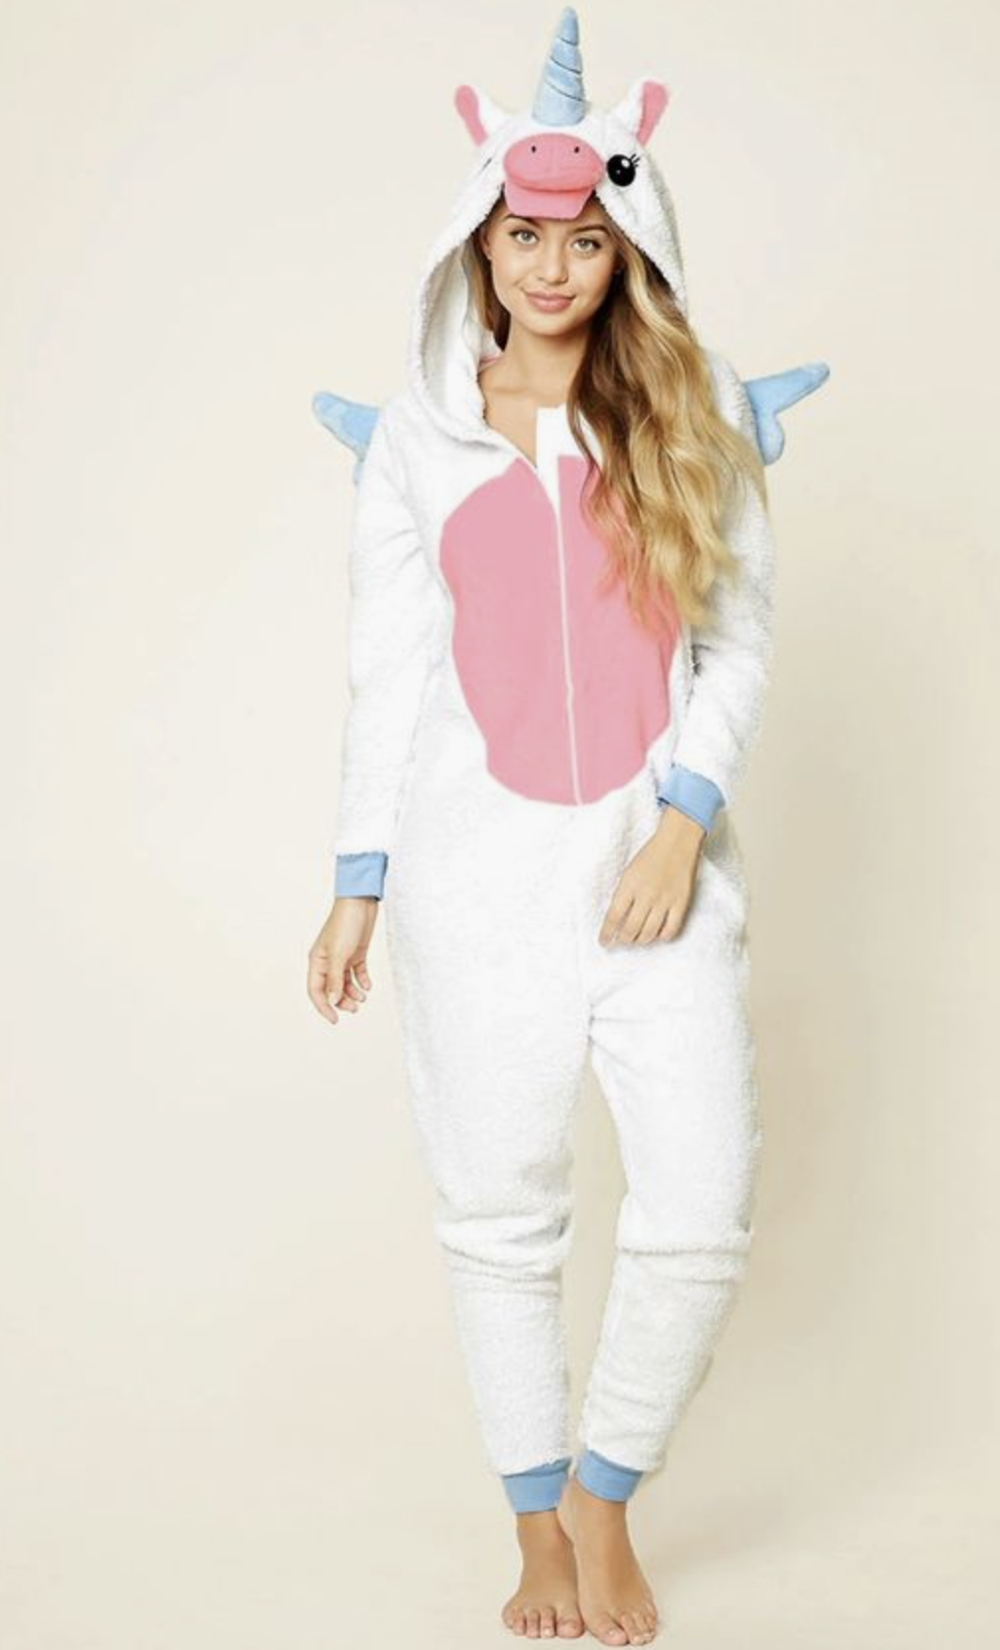 This Unicorn Onesie would make the perfect cute, simple and comfortable Halloween costume!